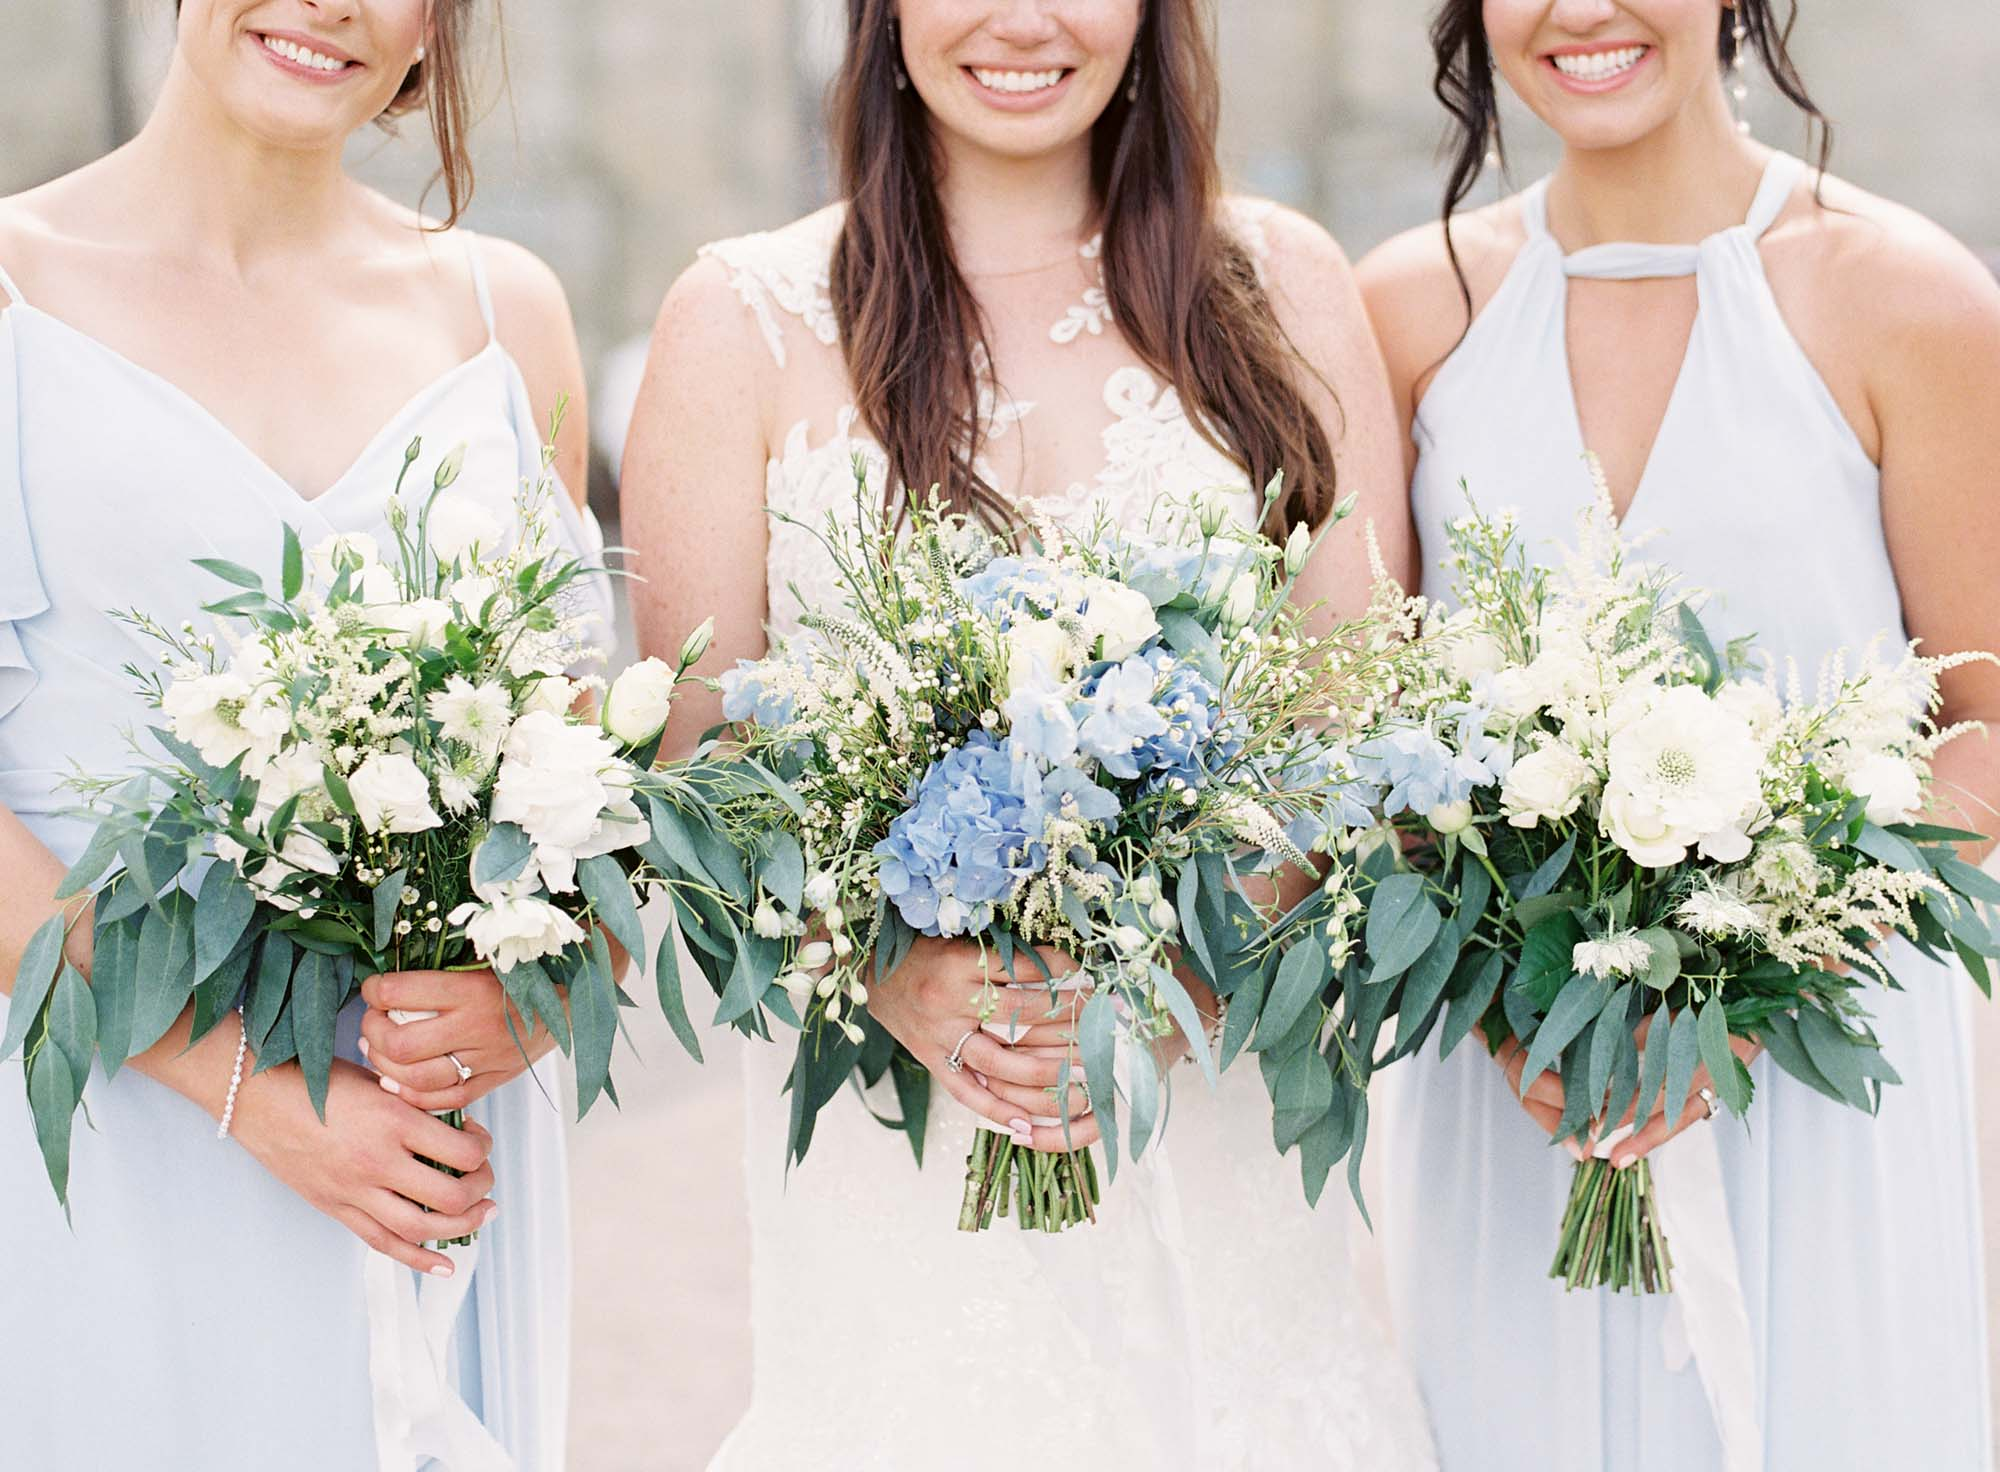 White, blue and green wedding bouquets being held by bride and bridesmaids